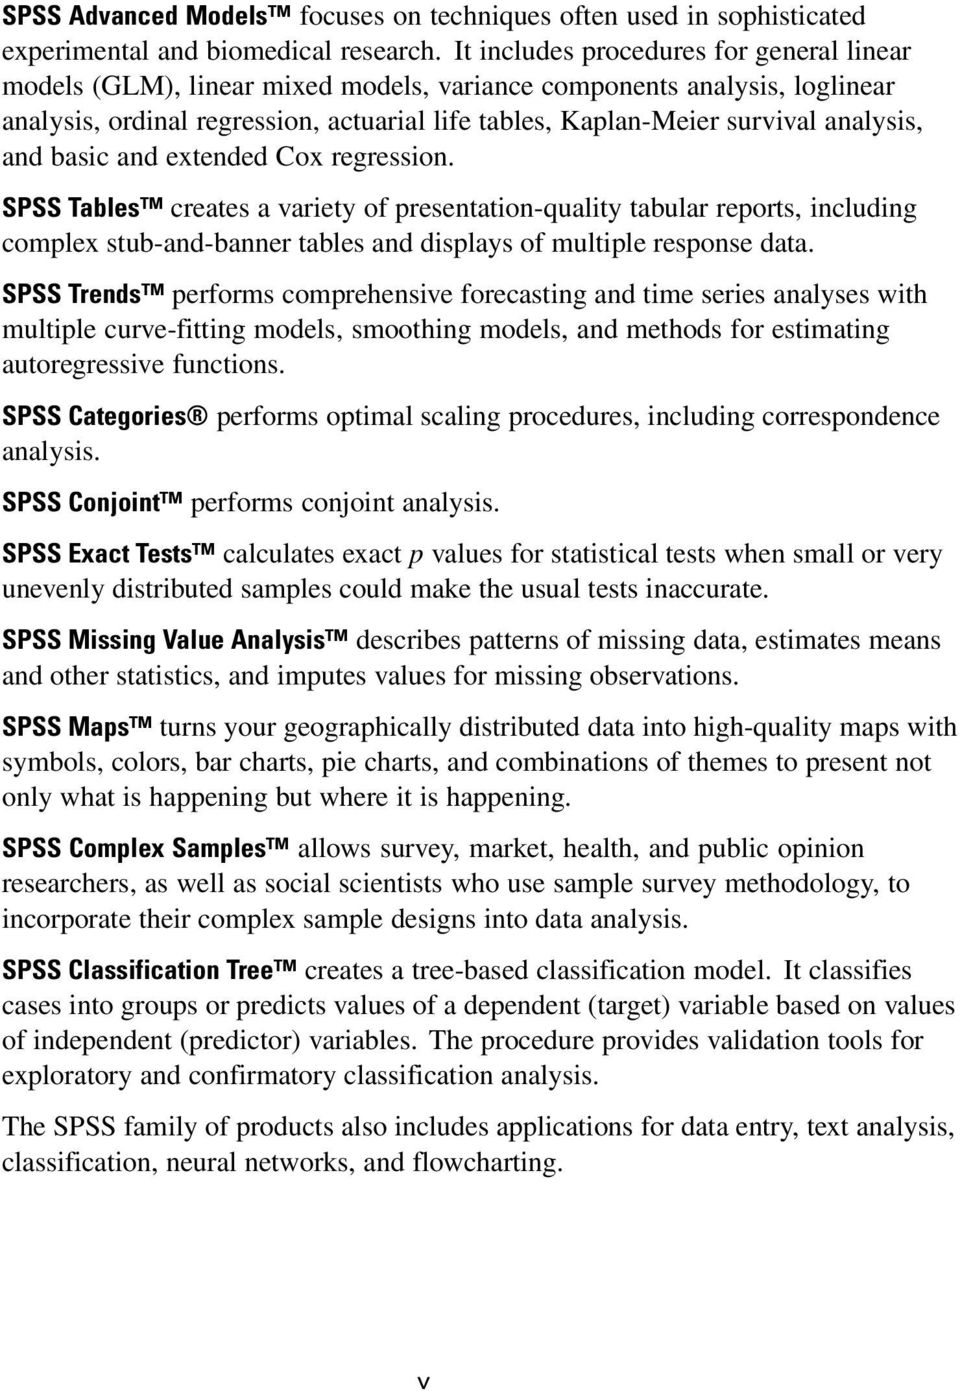 spss guide to data analysis pdf